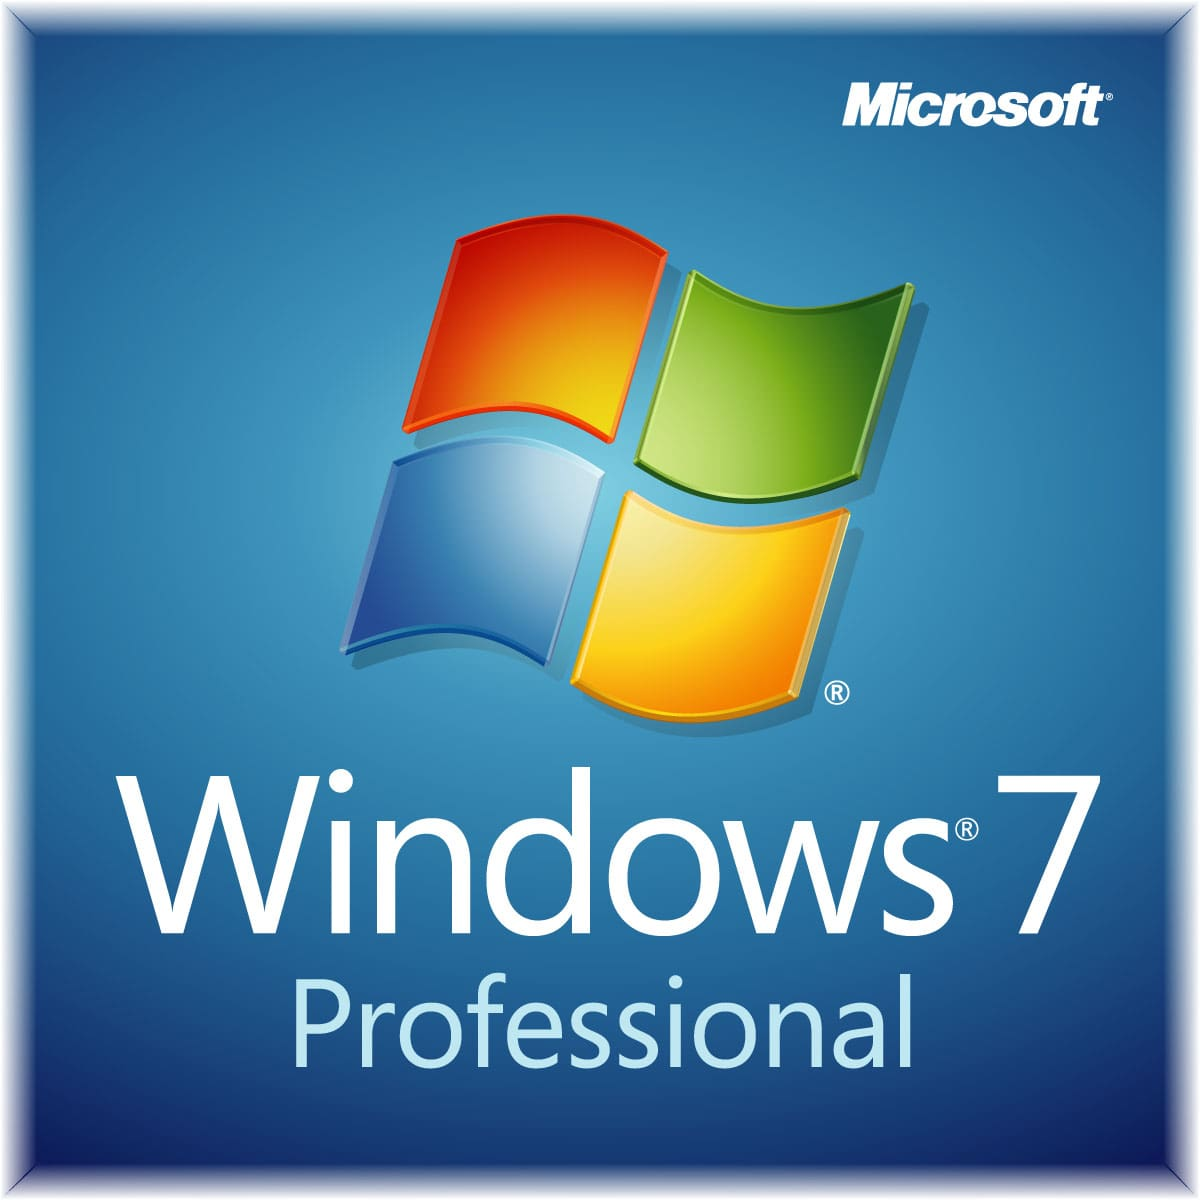 Windows 7 Professional, SP1, 32-bit, 1pk, DSP, OEM, DVD, DE für 149,00 Euro